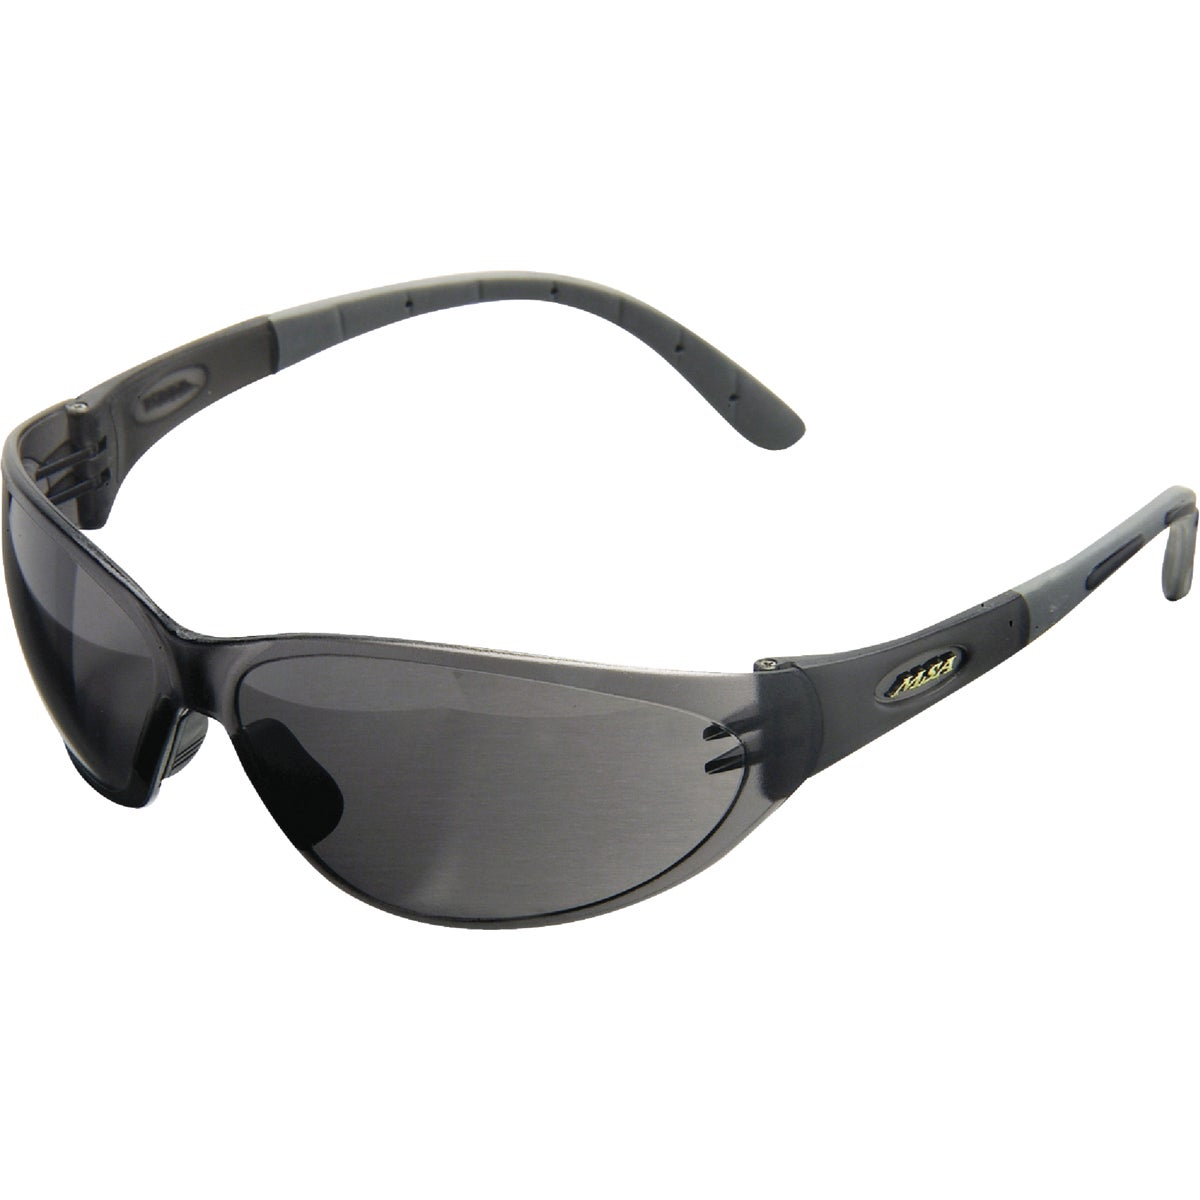 MSA Safety/InCom TINTED SAFETY GLASSES 10041749